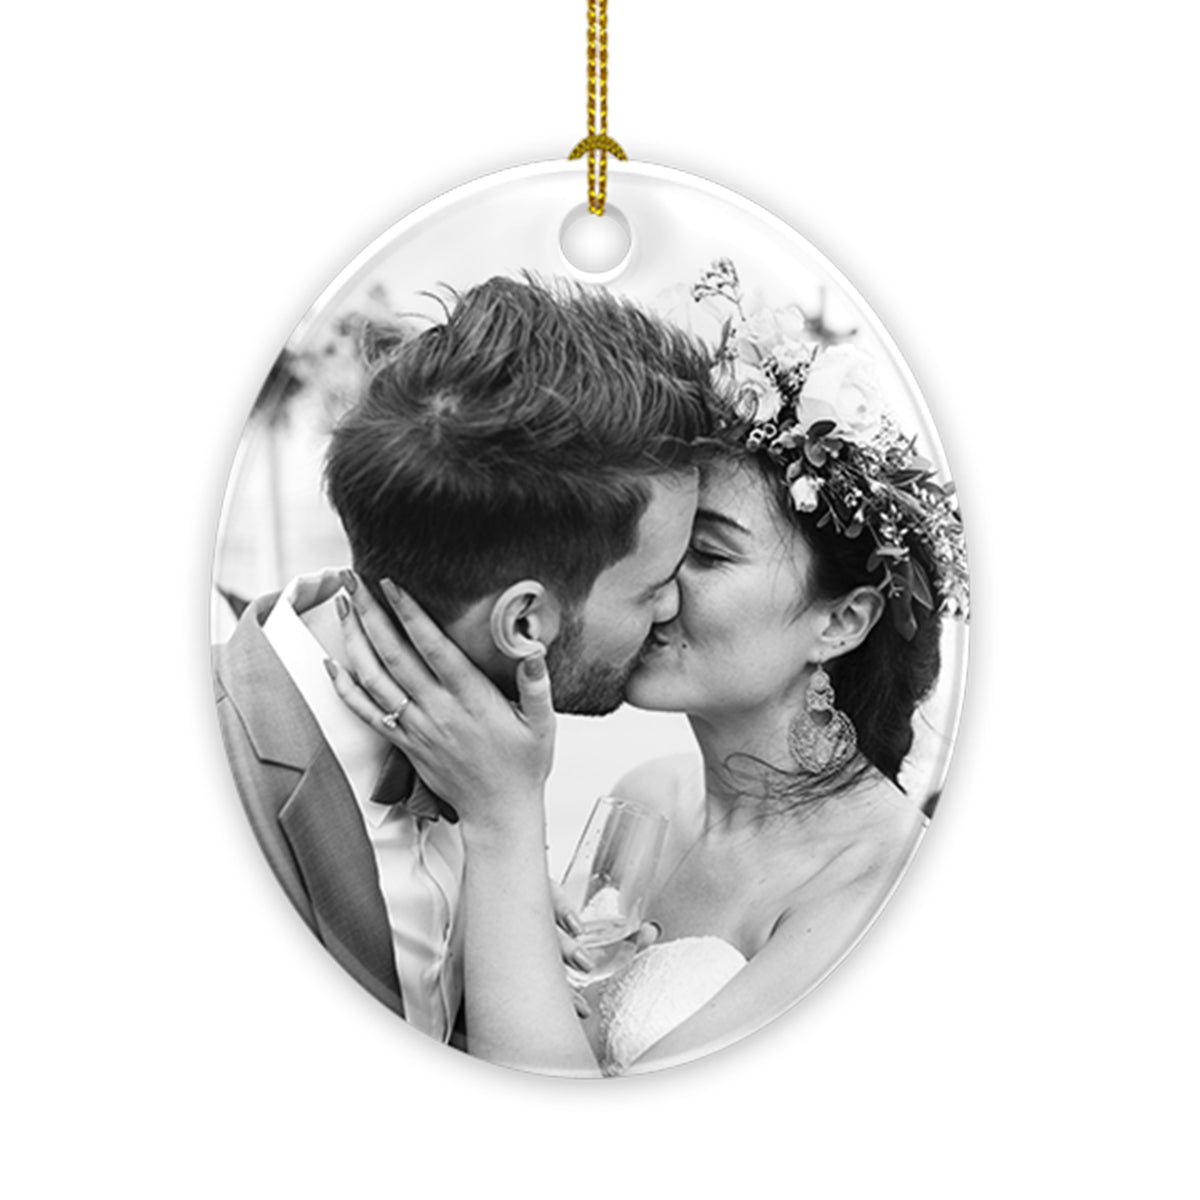 Oval Ceramic Ornaments Personalized Your Photo